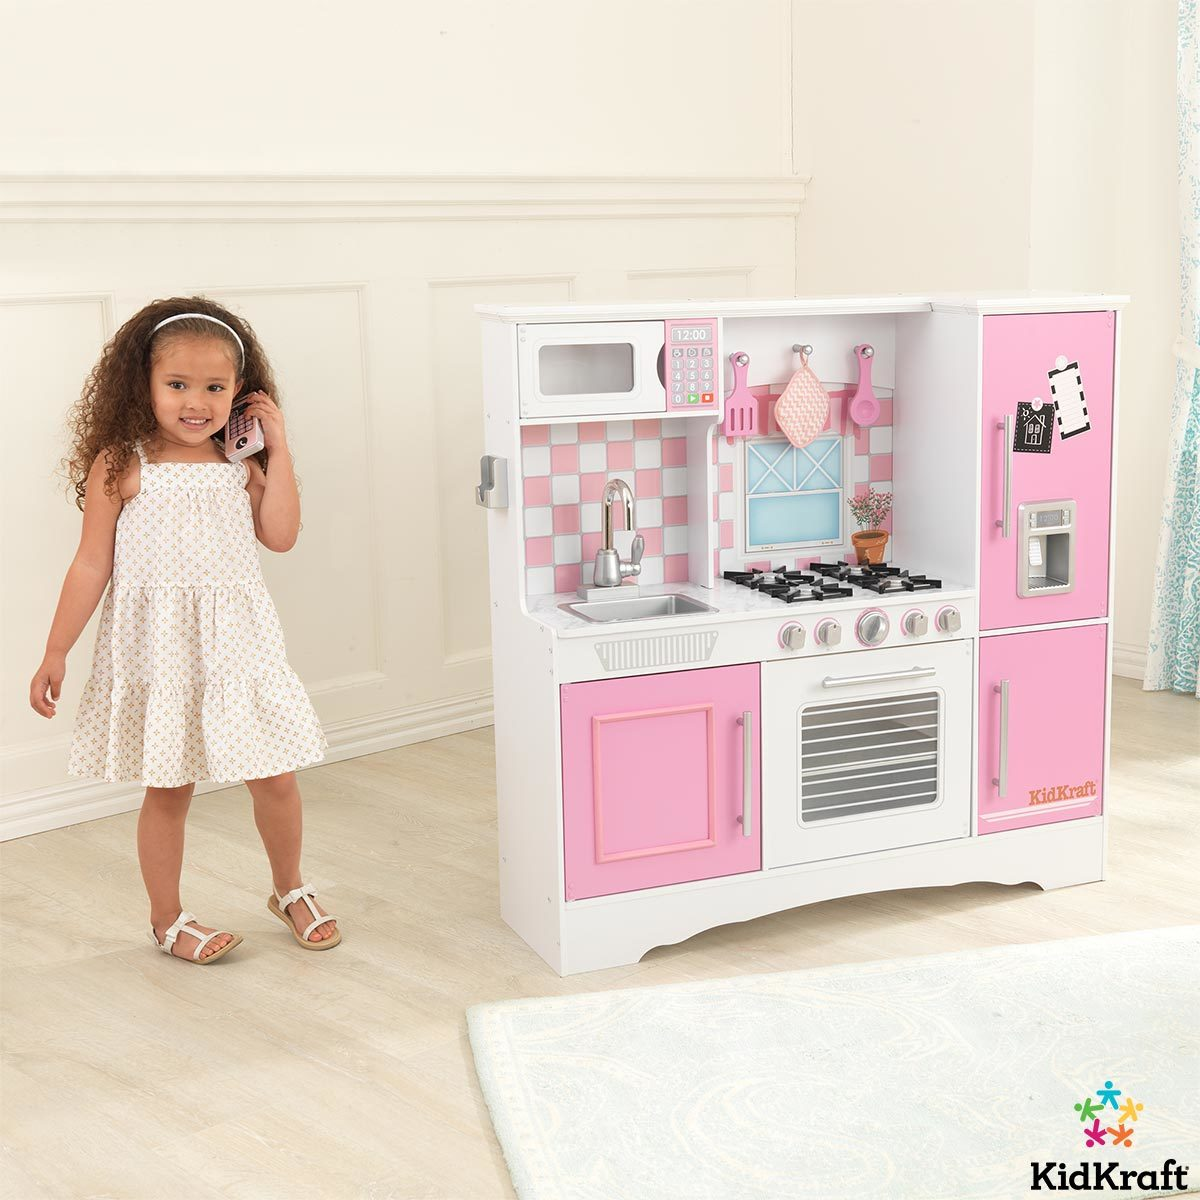 KidKraft Culinary Kitchen in Pink (10+ Years)  Costco UK